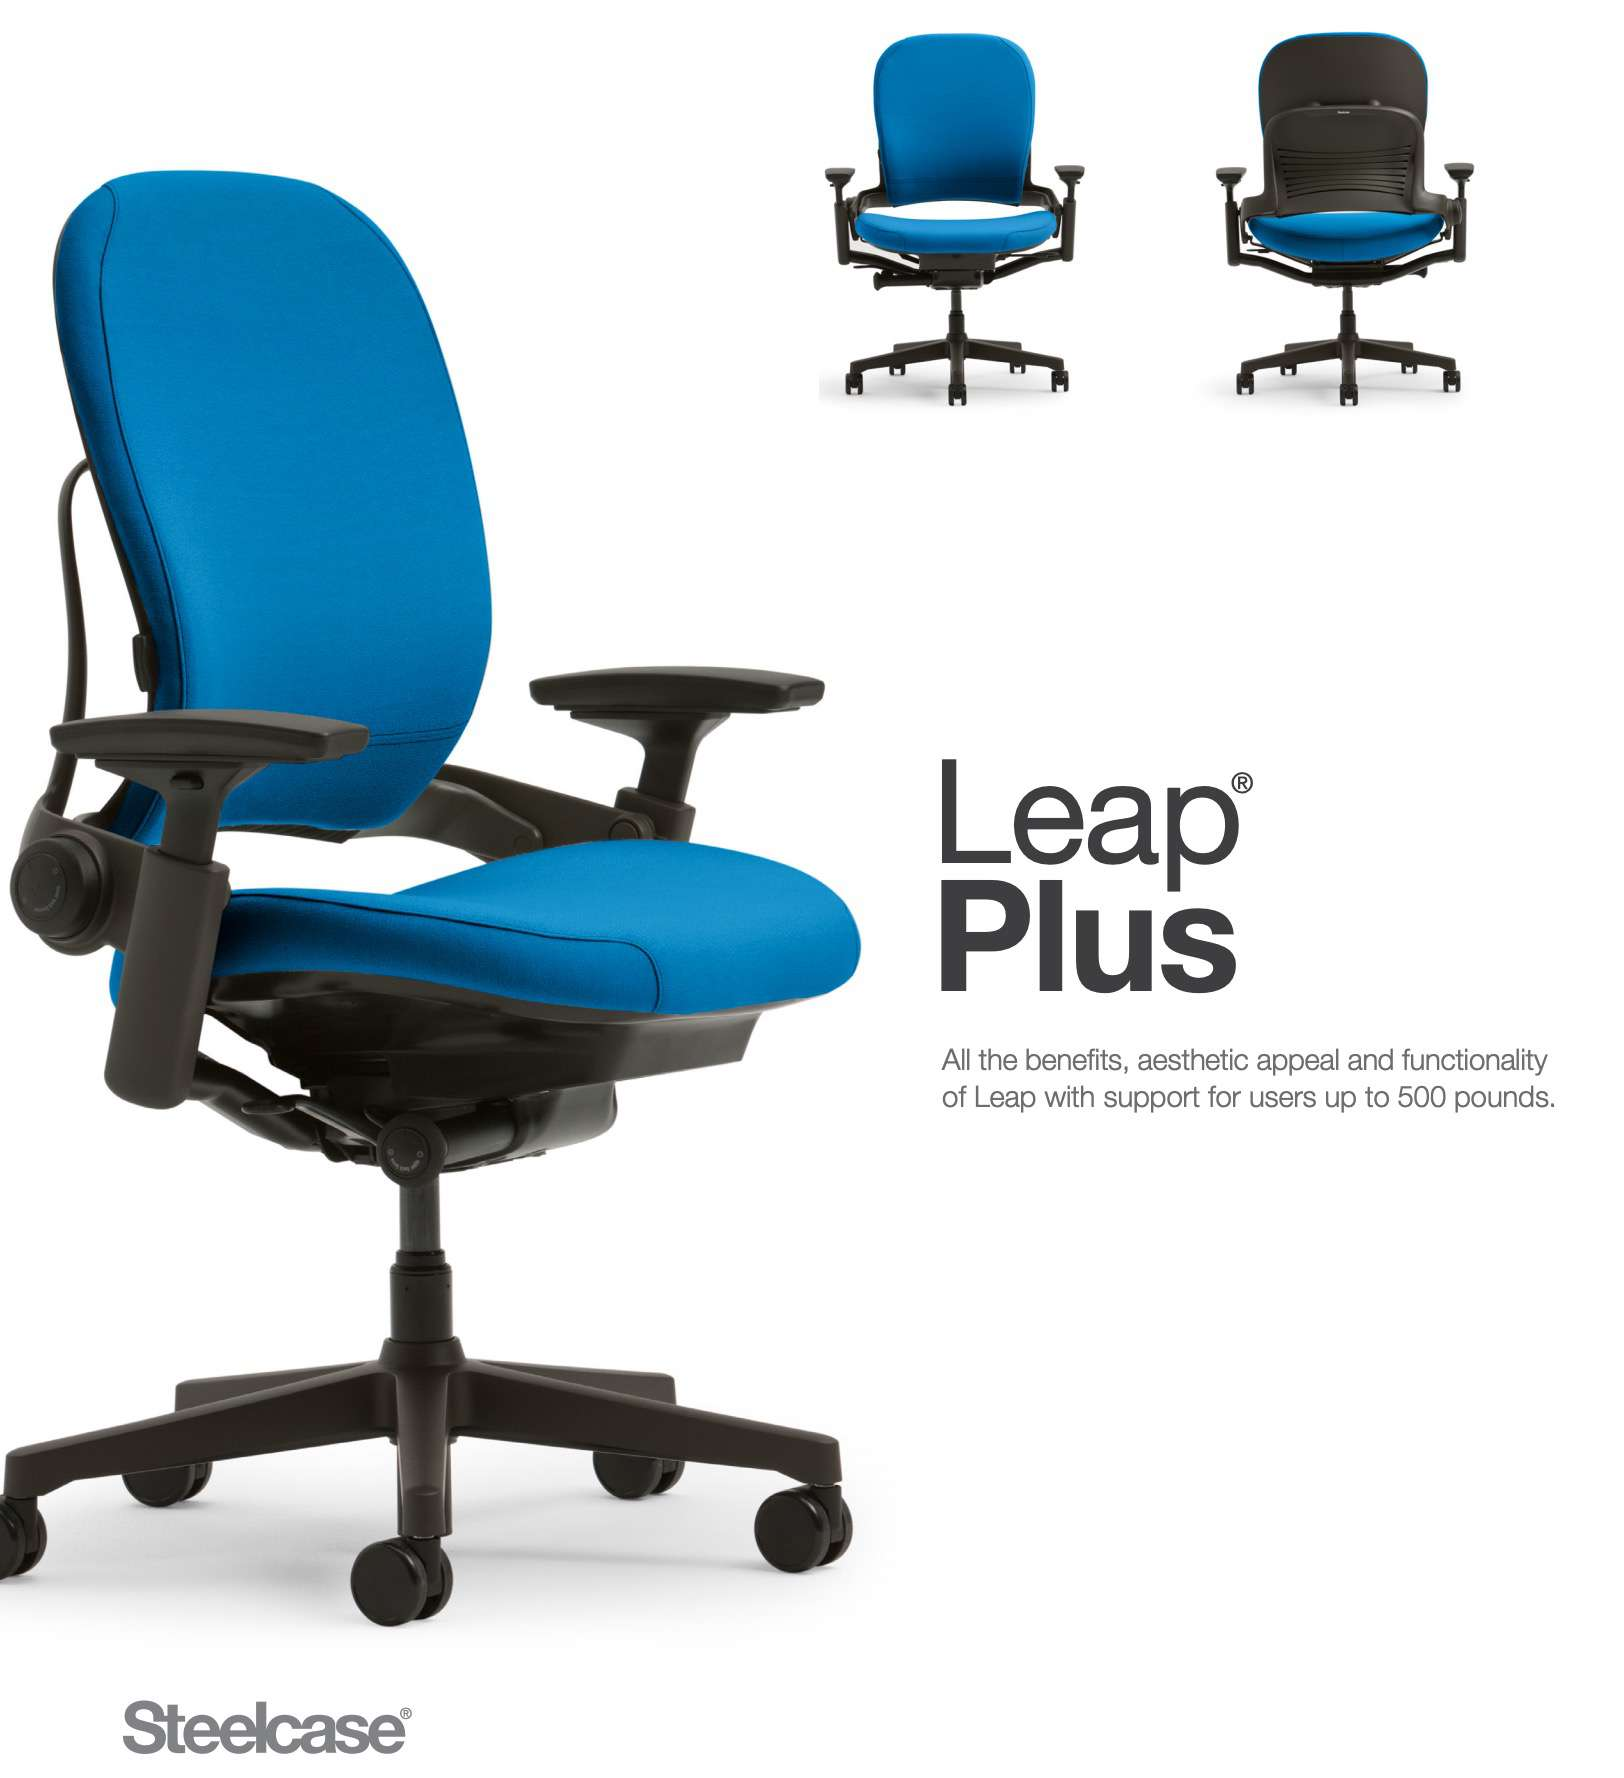 Steelcase Leap Plus Review